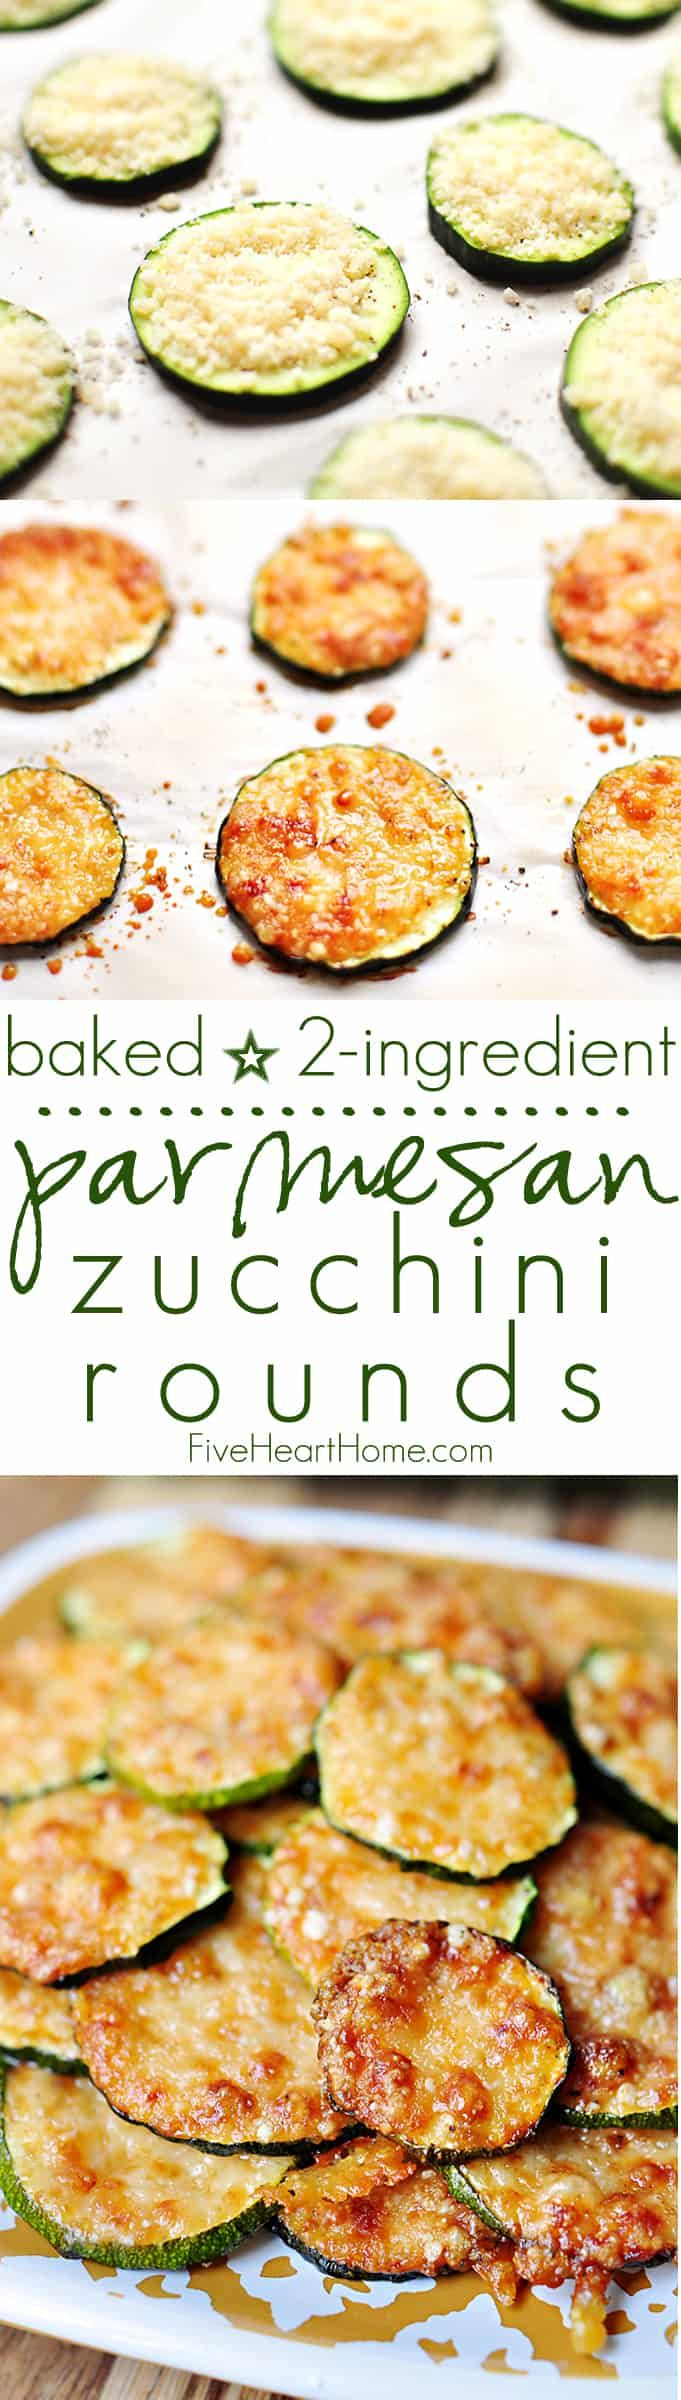 2-INGREDIENT Baked Parmesan Zucchini Rounds • FIVEheartHOME